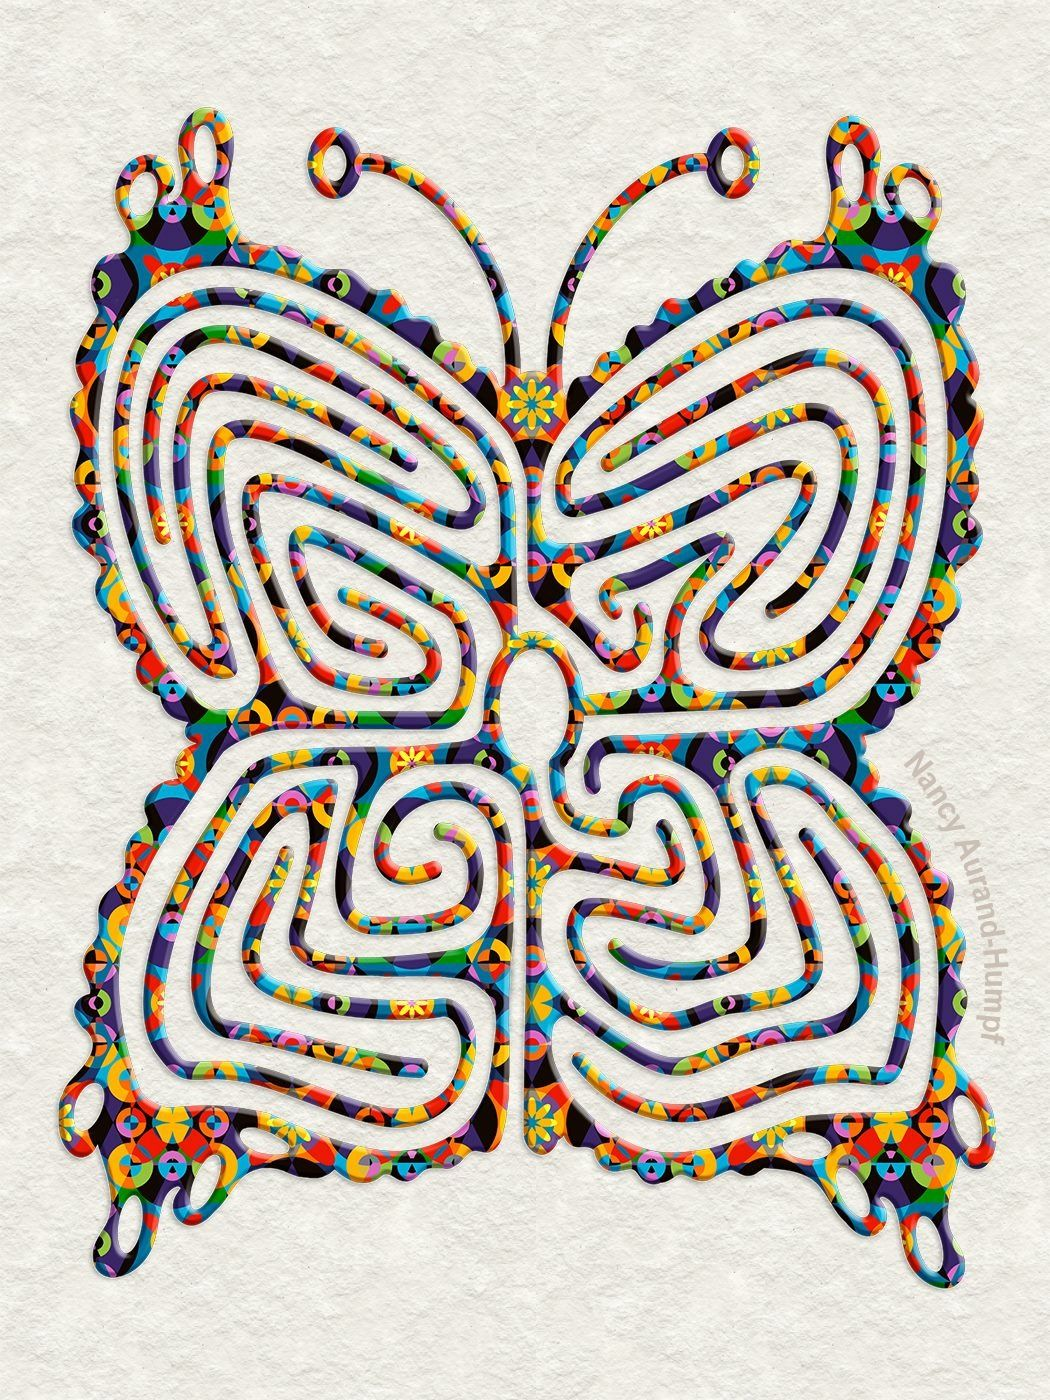 Labyrinth Patterns How To Make A Seven Path Purple Circuit Classical From 5circuit Chartres Pinterest Garden Maze And